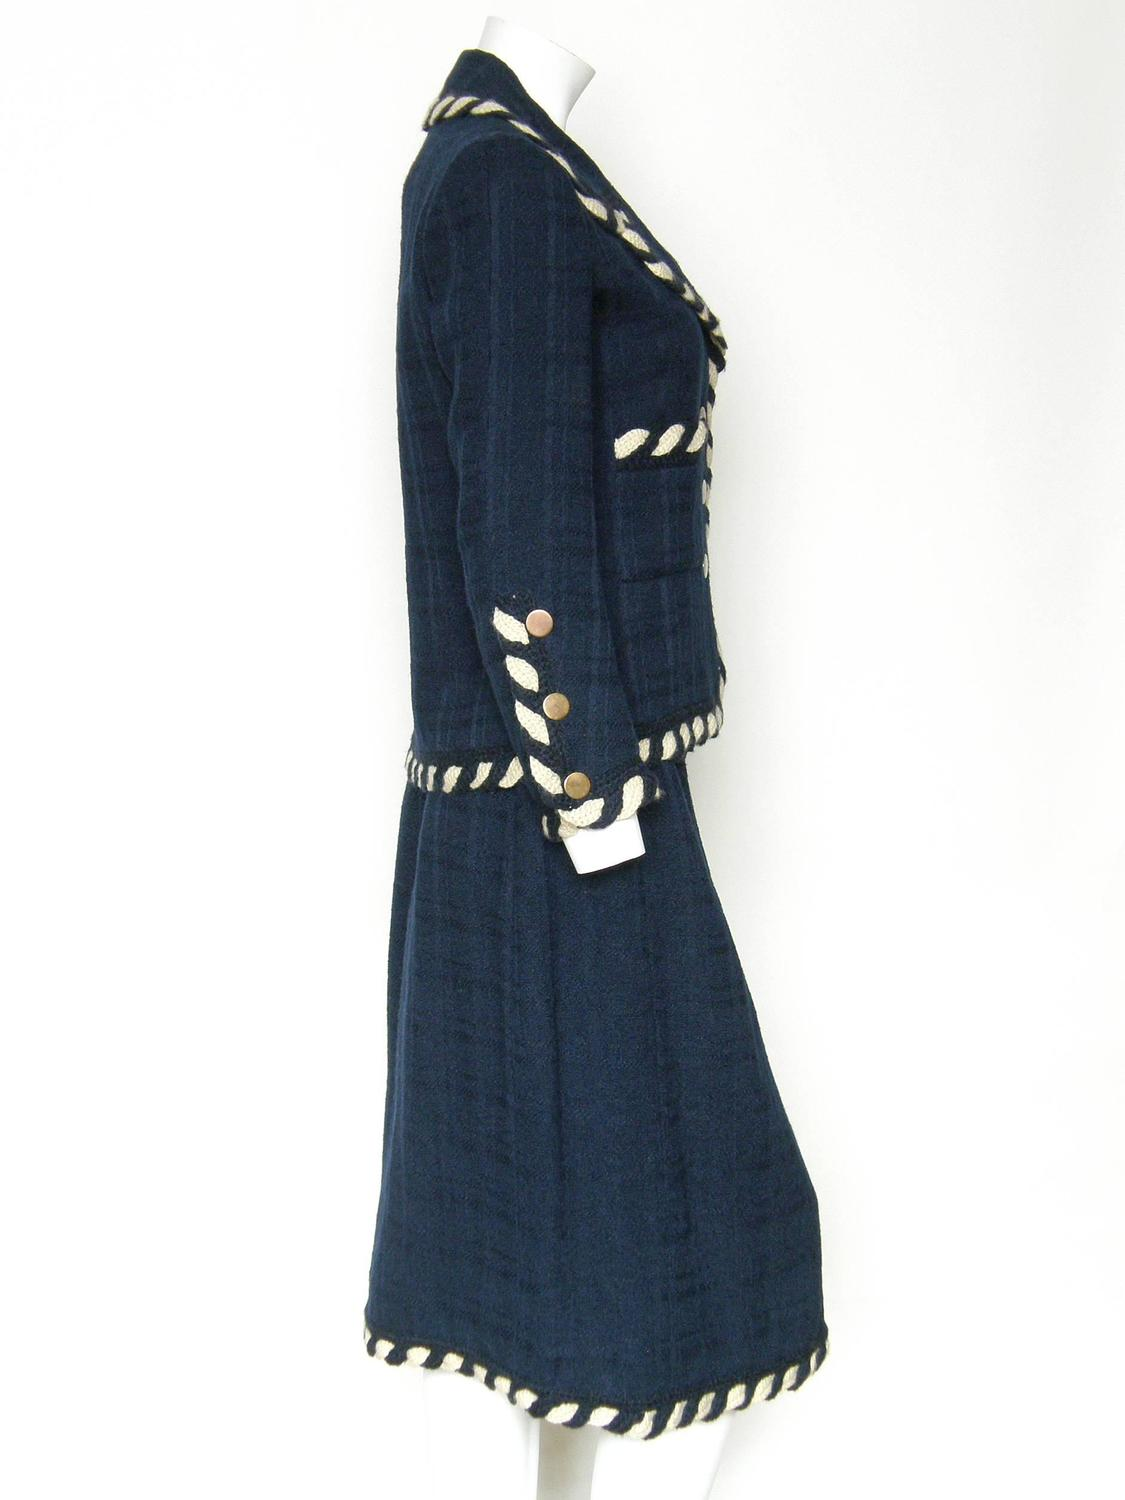 1960s chanel haute couture suit for sale at 1stdibs for Haute couture sale